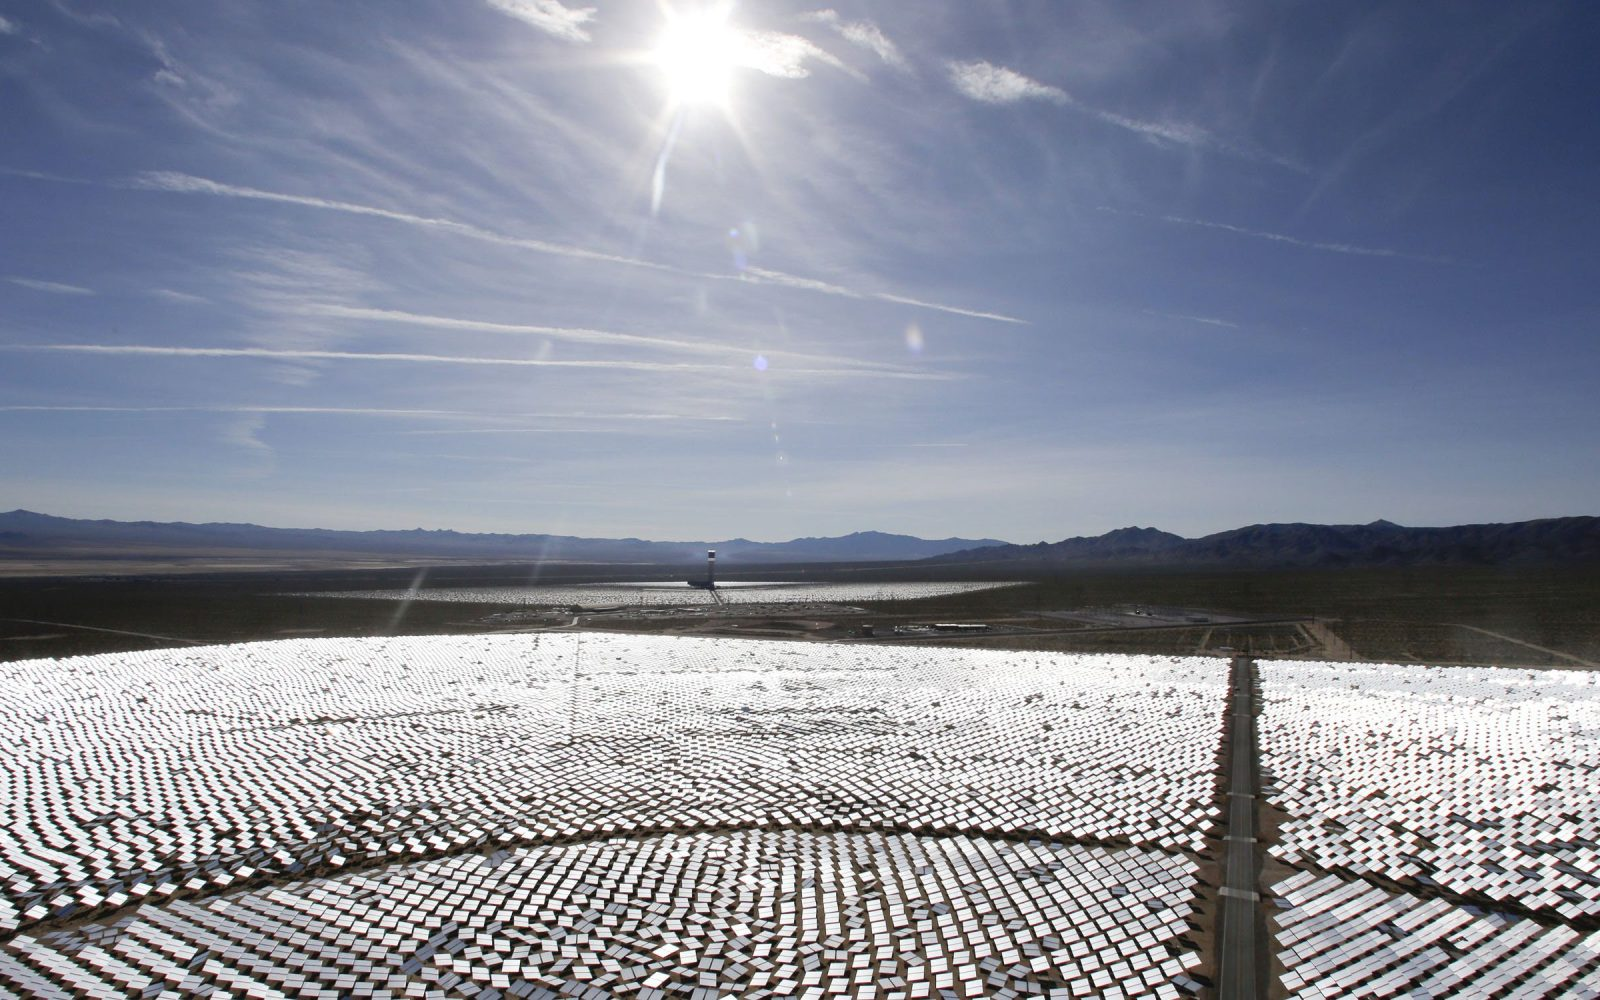 US Department of Energy wants electricity grid to be able to handle 100% mid-day peak solar power